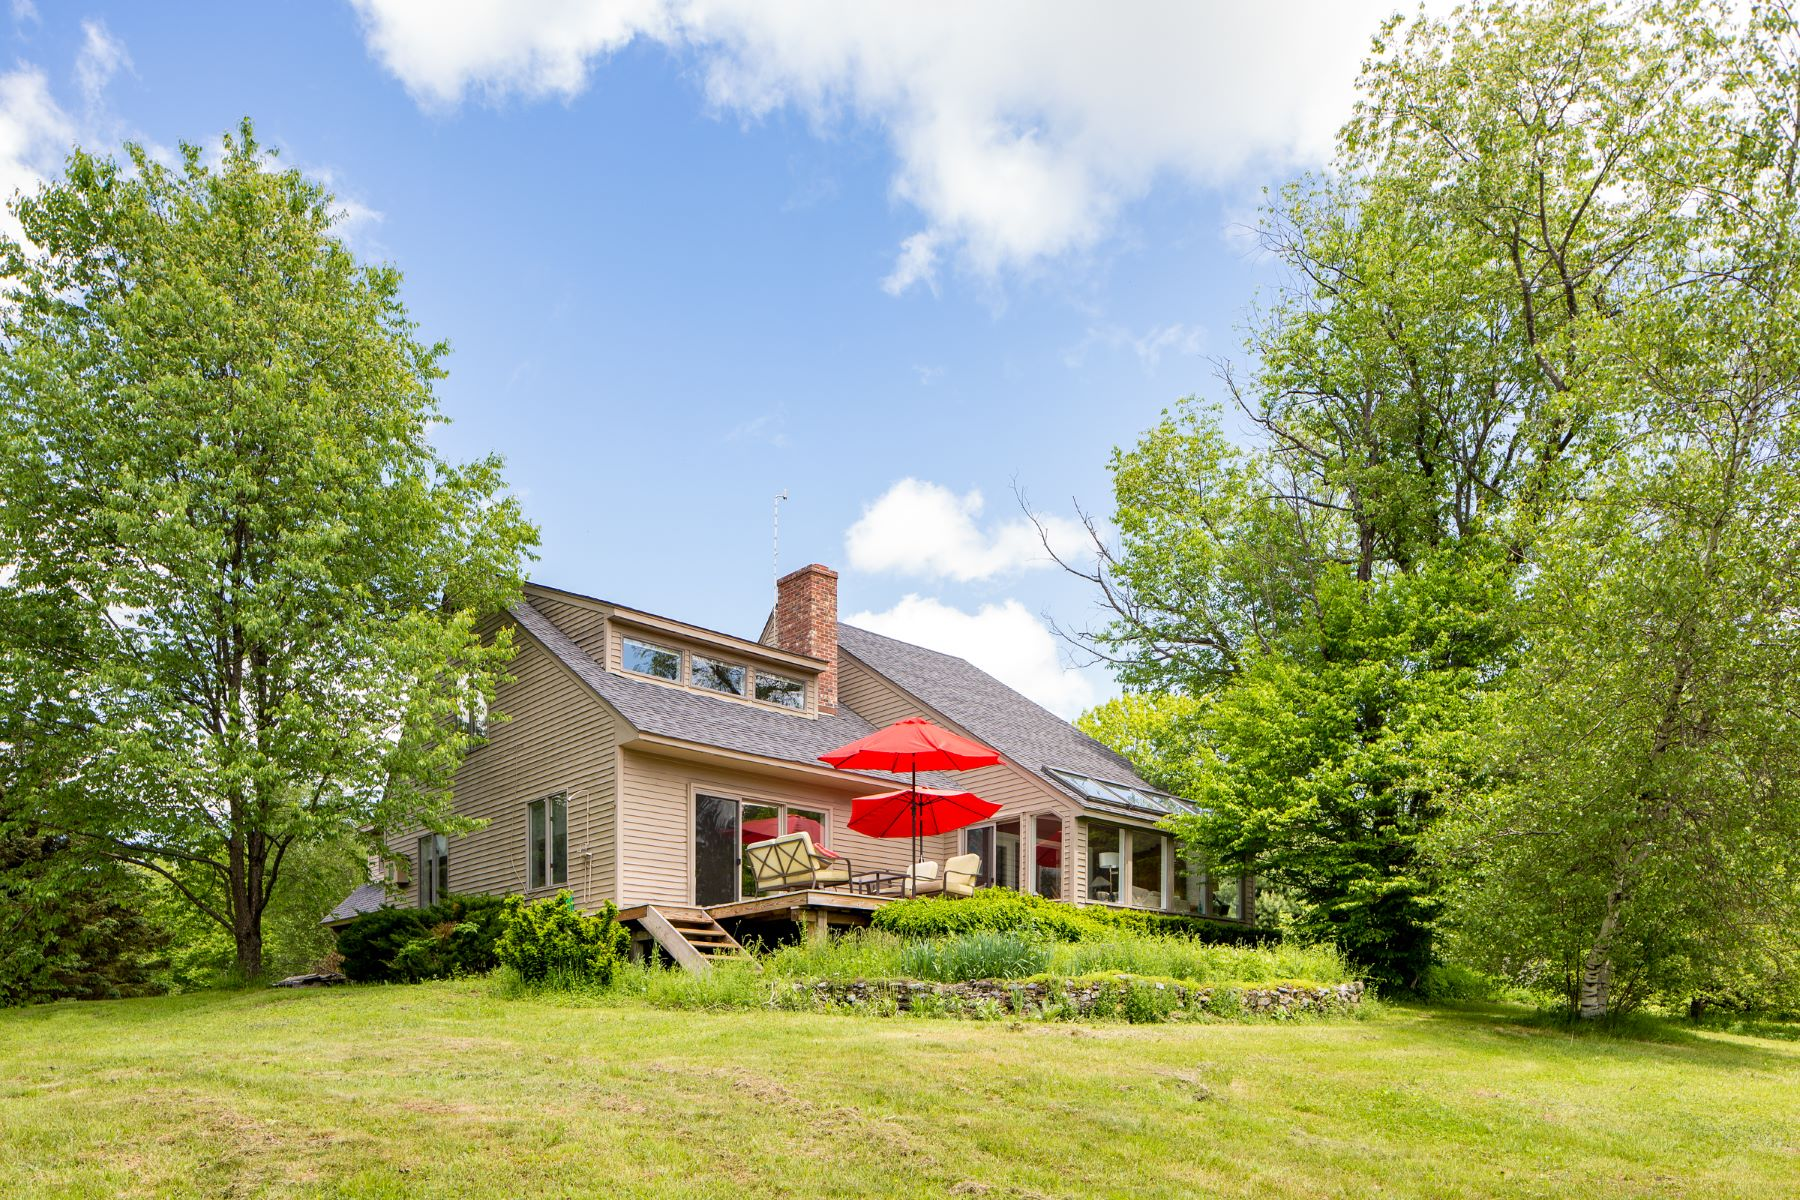 Casa Unifamiliar por un Venta en Renovated Country Home 128 West Center Rd West Stockbridge, Massachusetts 01266 Estados Unidos